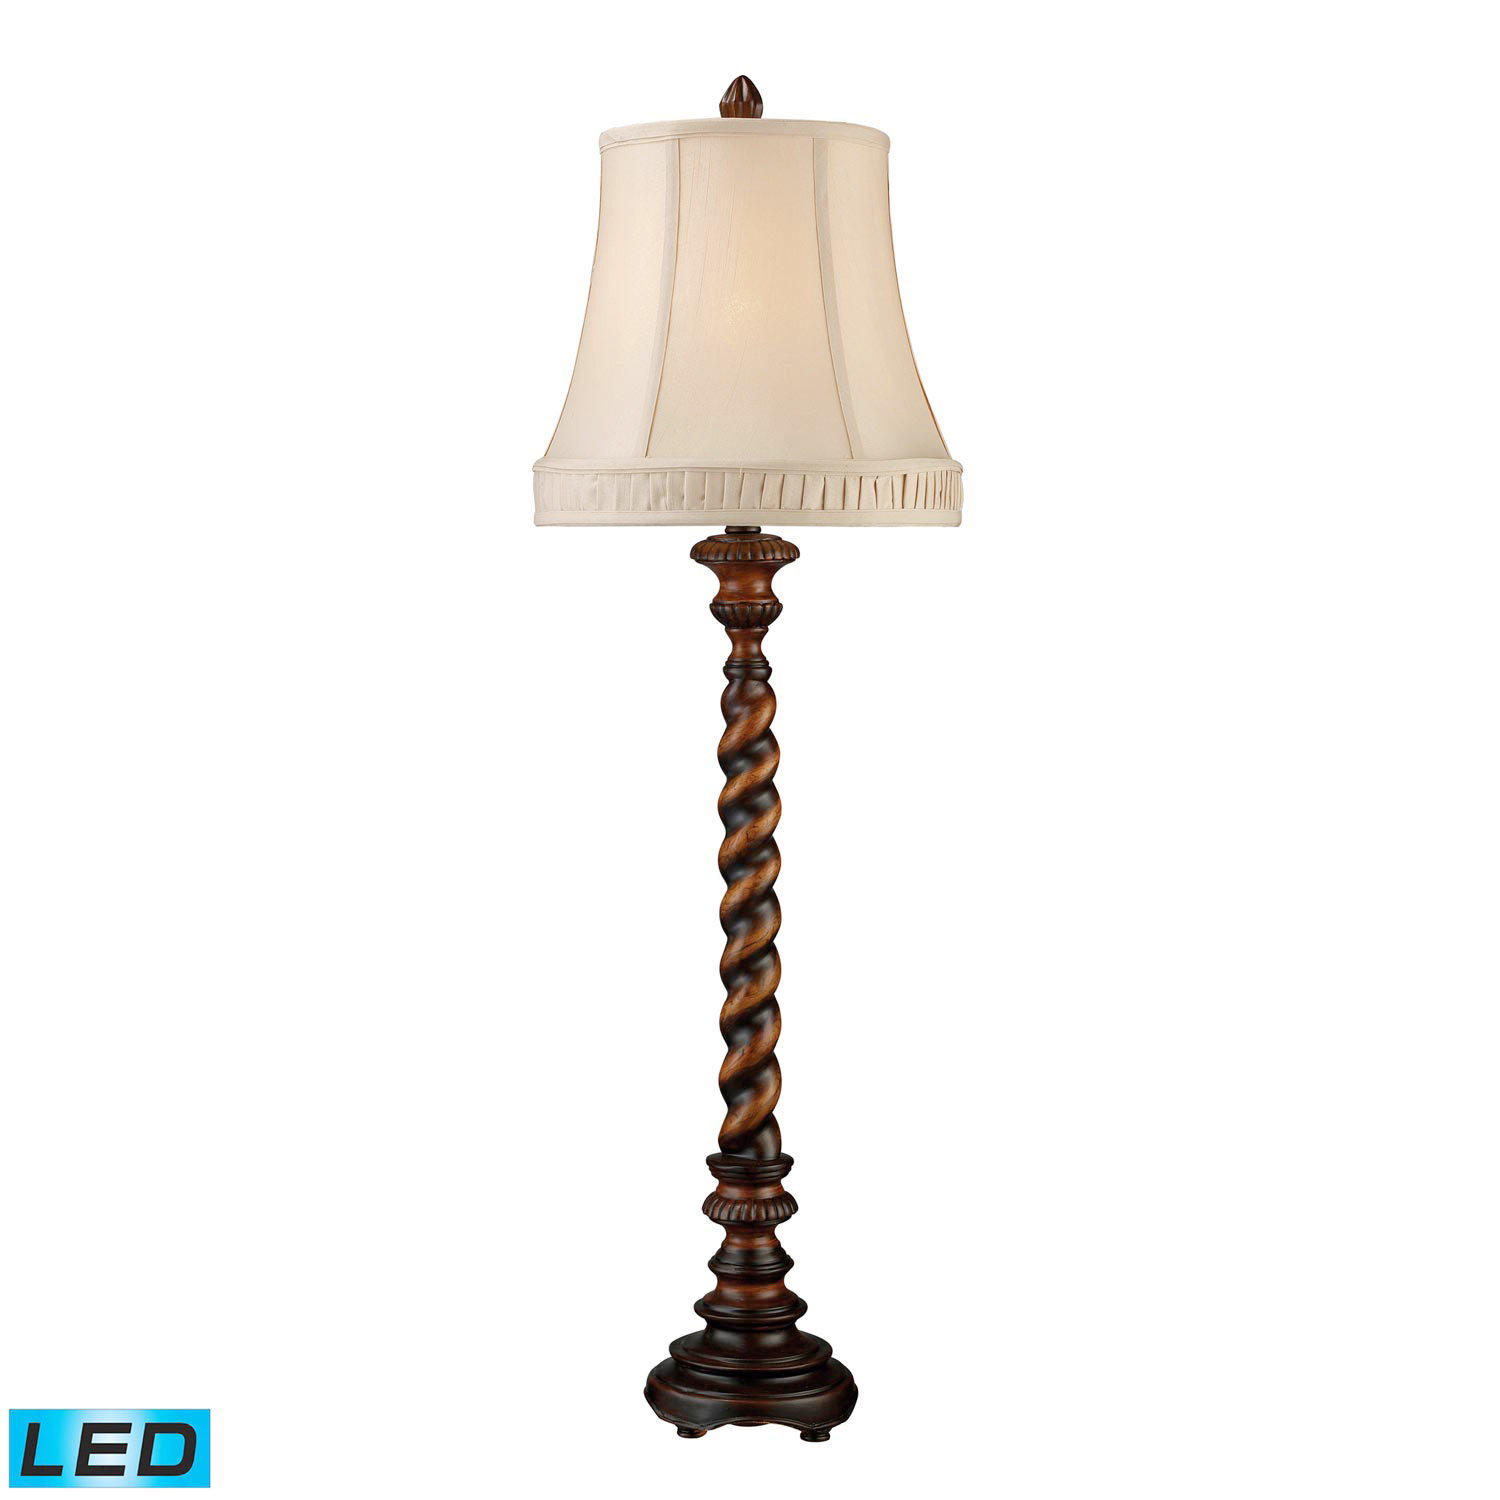 Elk Lighting D1758-LED Rye Park Table Lamp - Sienna Bronze Wood